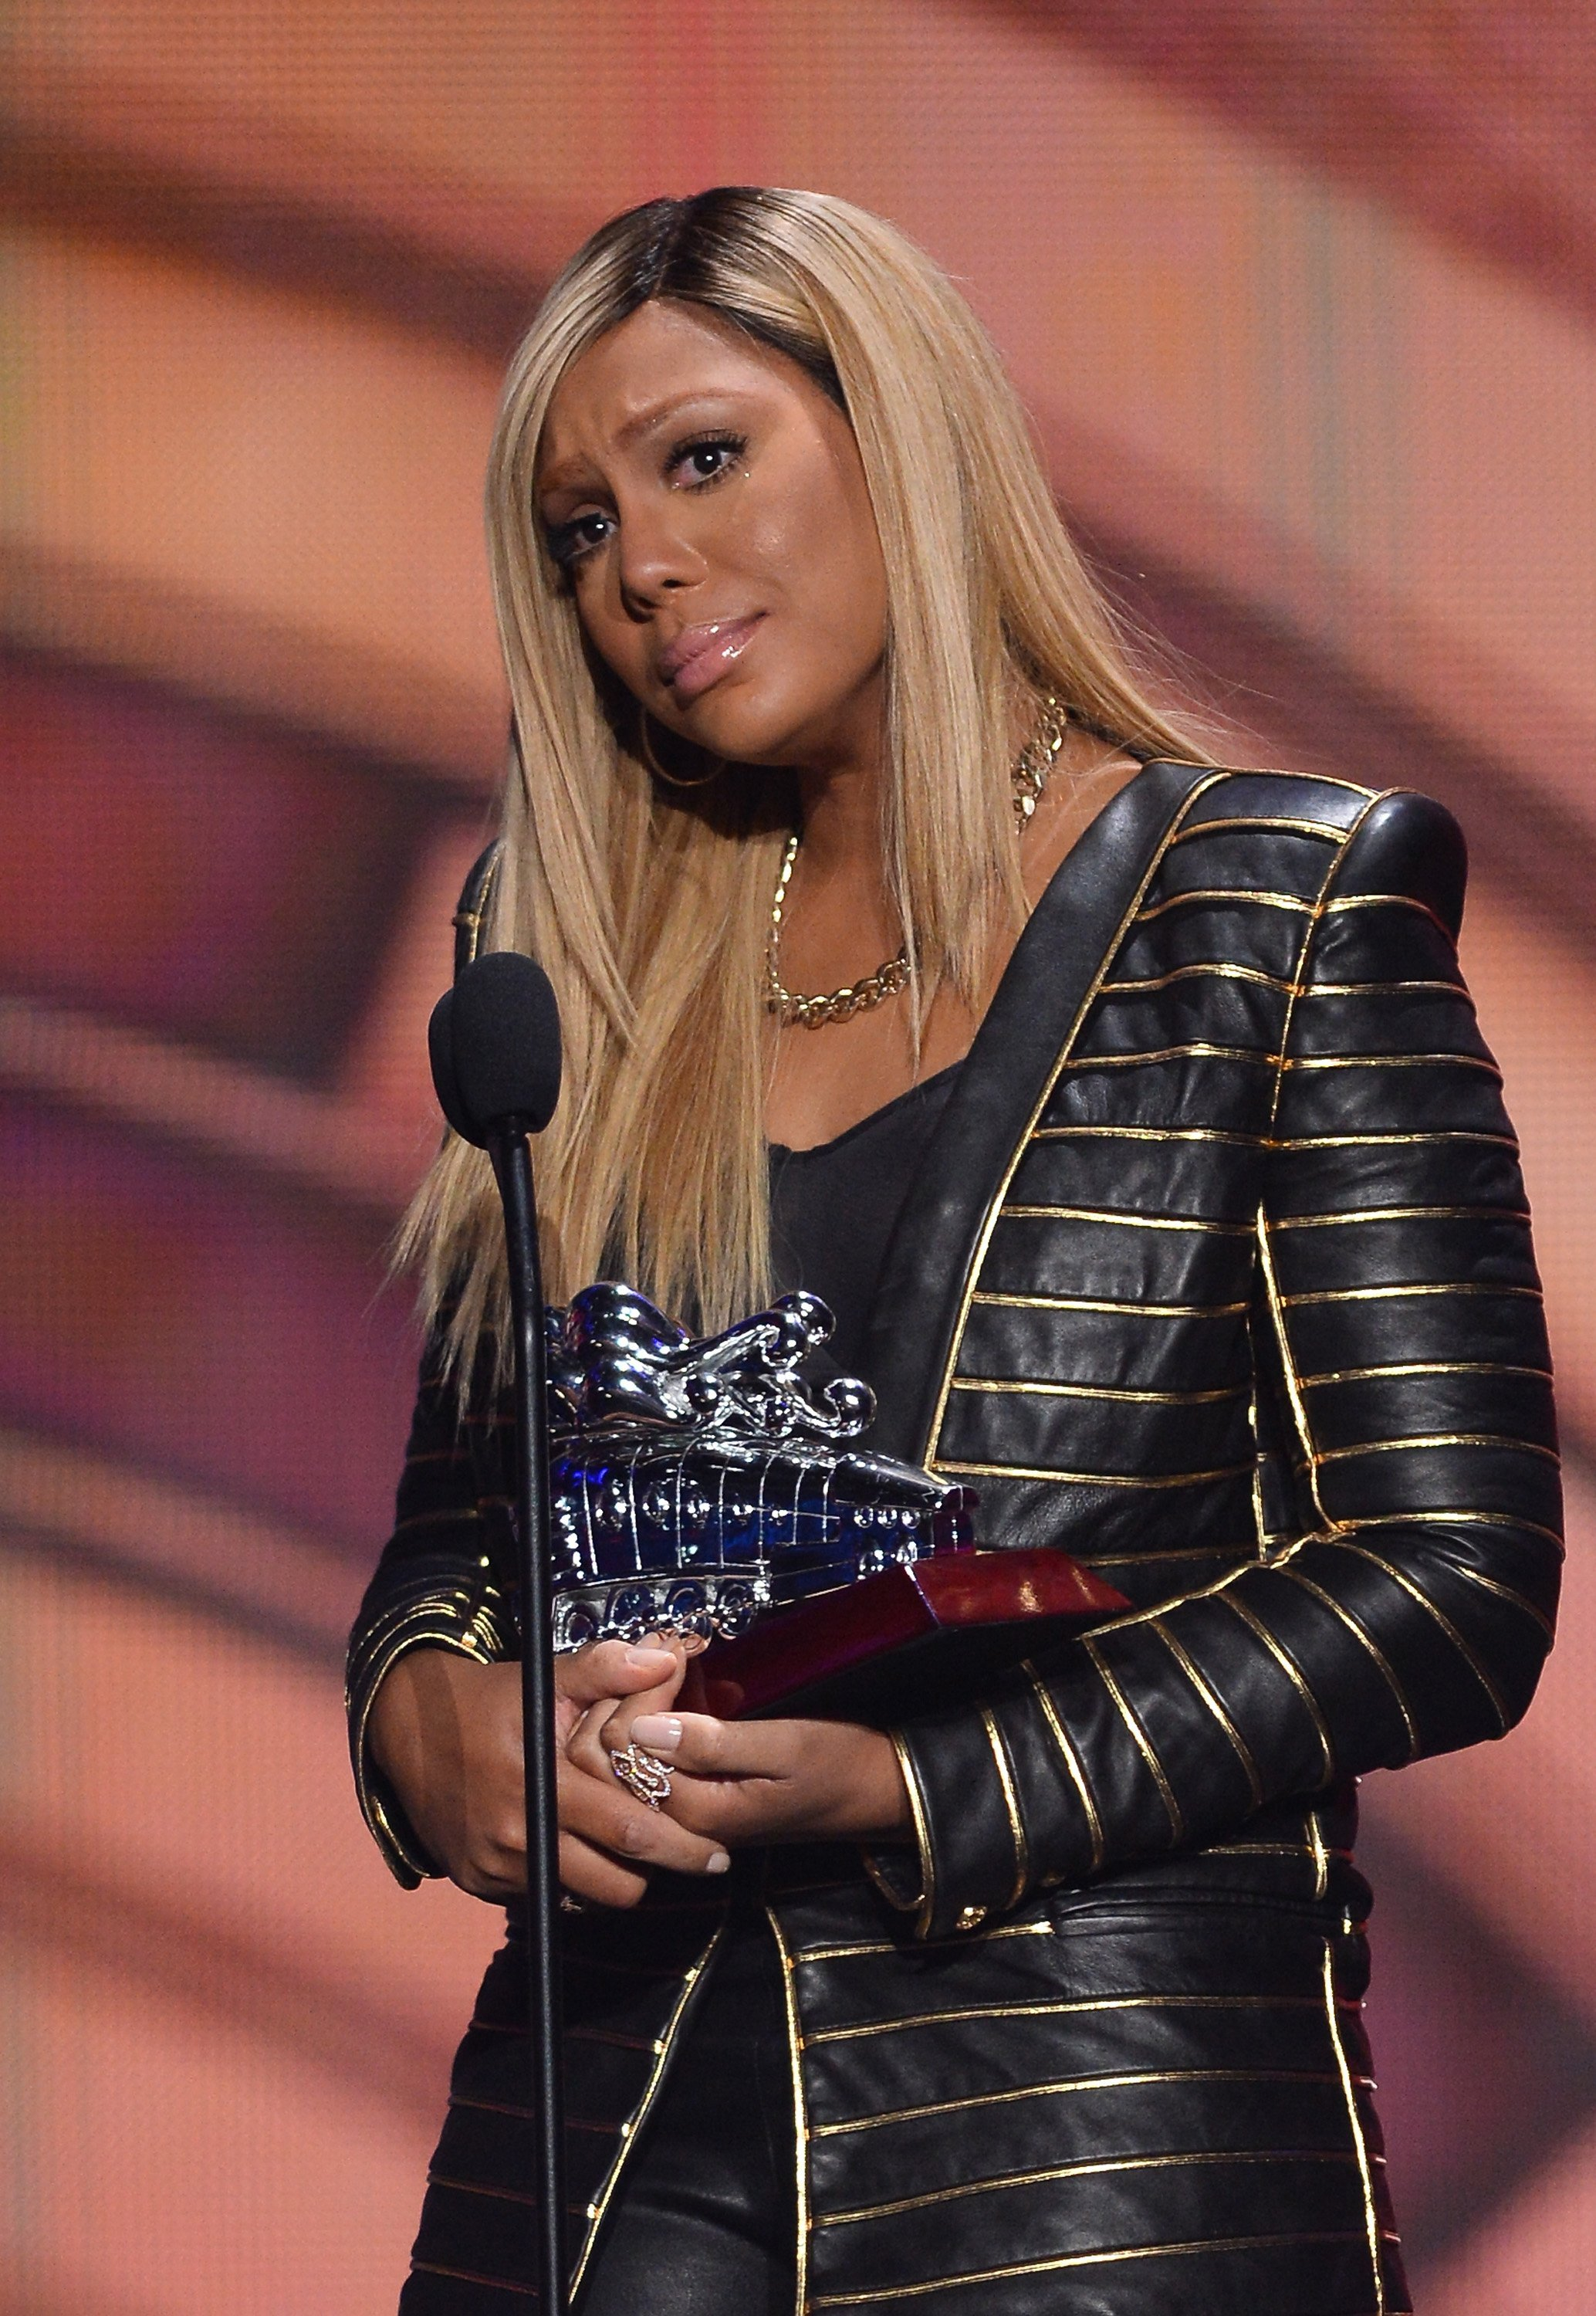 Tamar Braxton accepts the Chaka Khan Award at the Soul Train Awards on Nov. 8, 2013 in Las Vegas | Photo: Getty Images